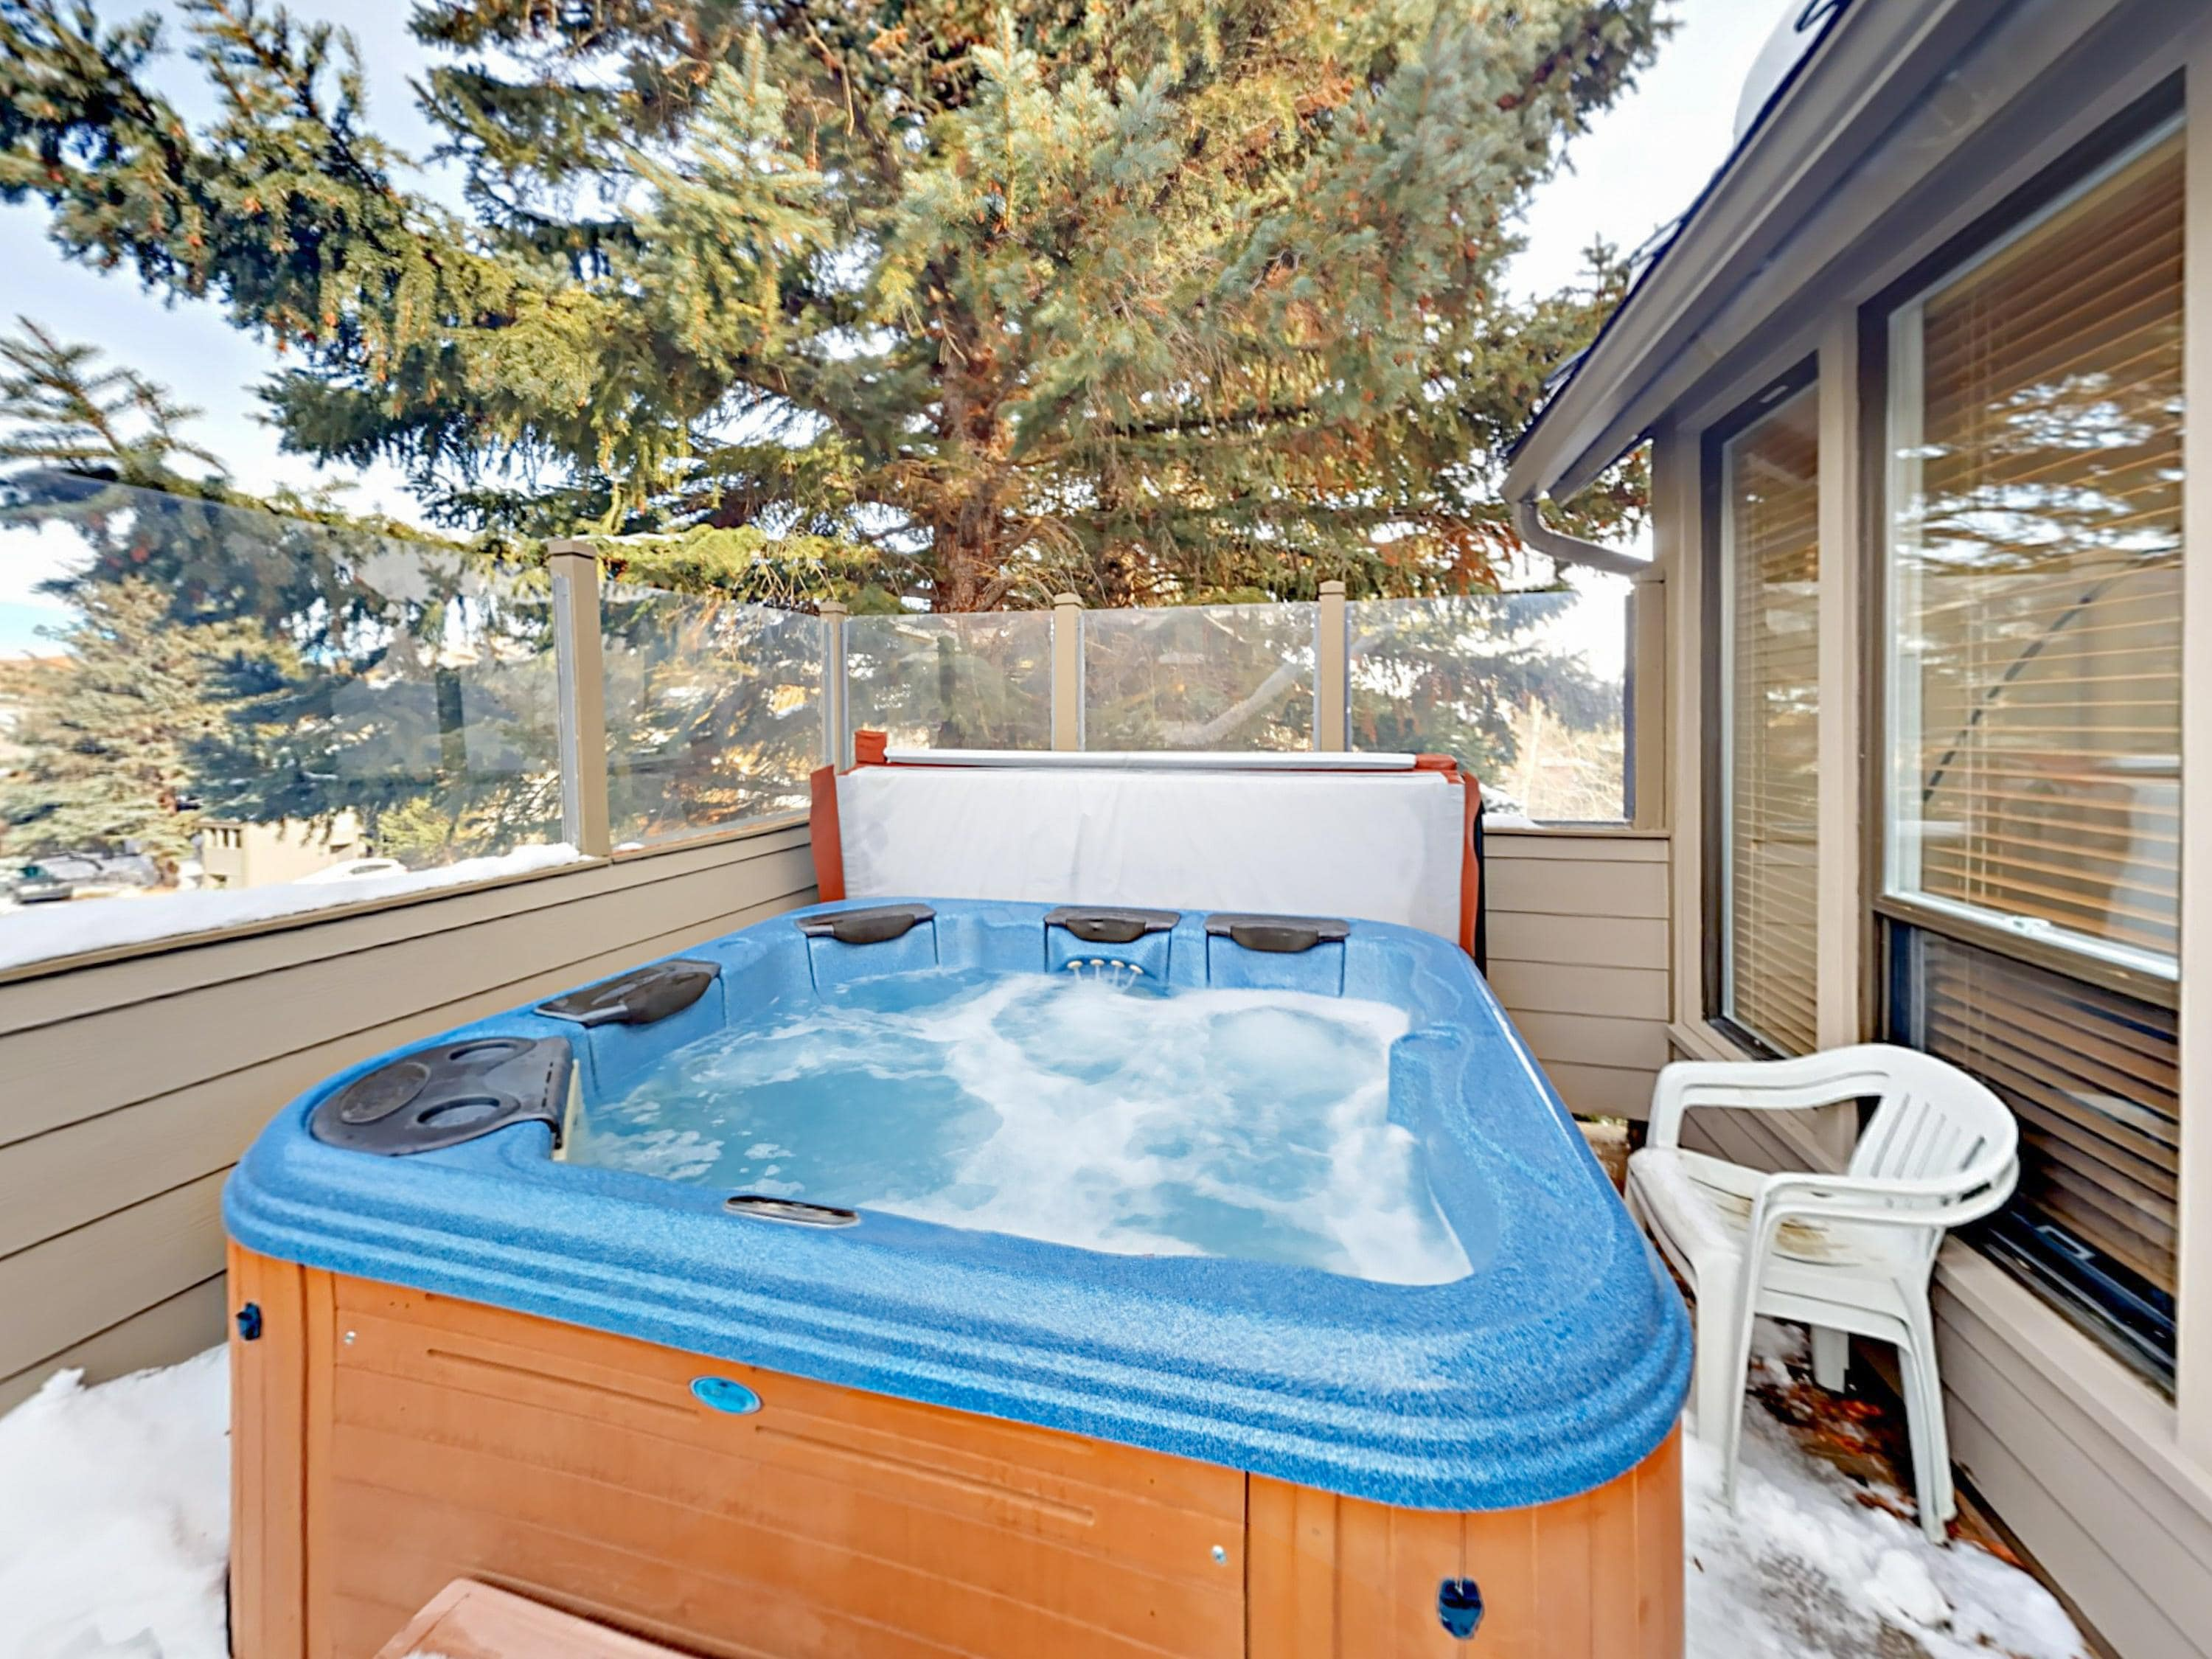 Take an indulgent soak in the private hot tub and enjoy the beautiful mountain vistas.